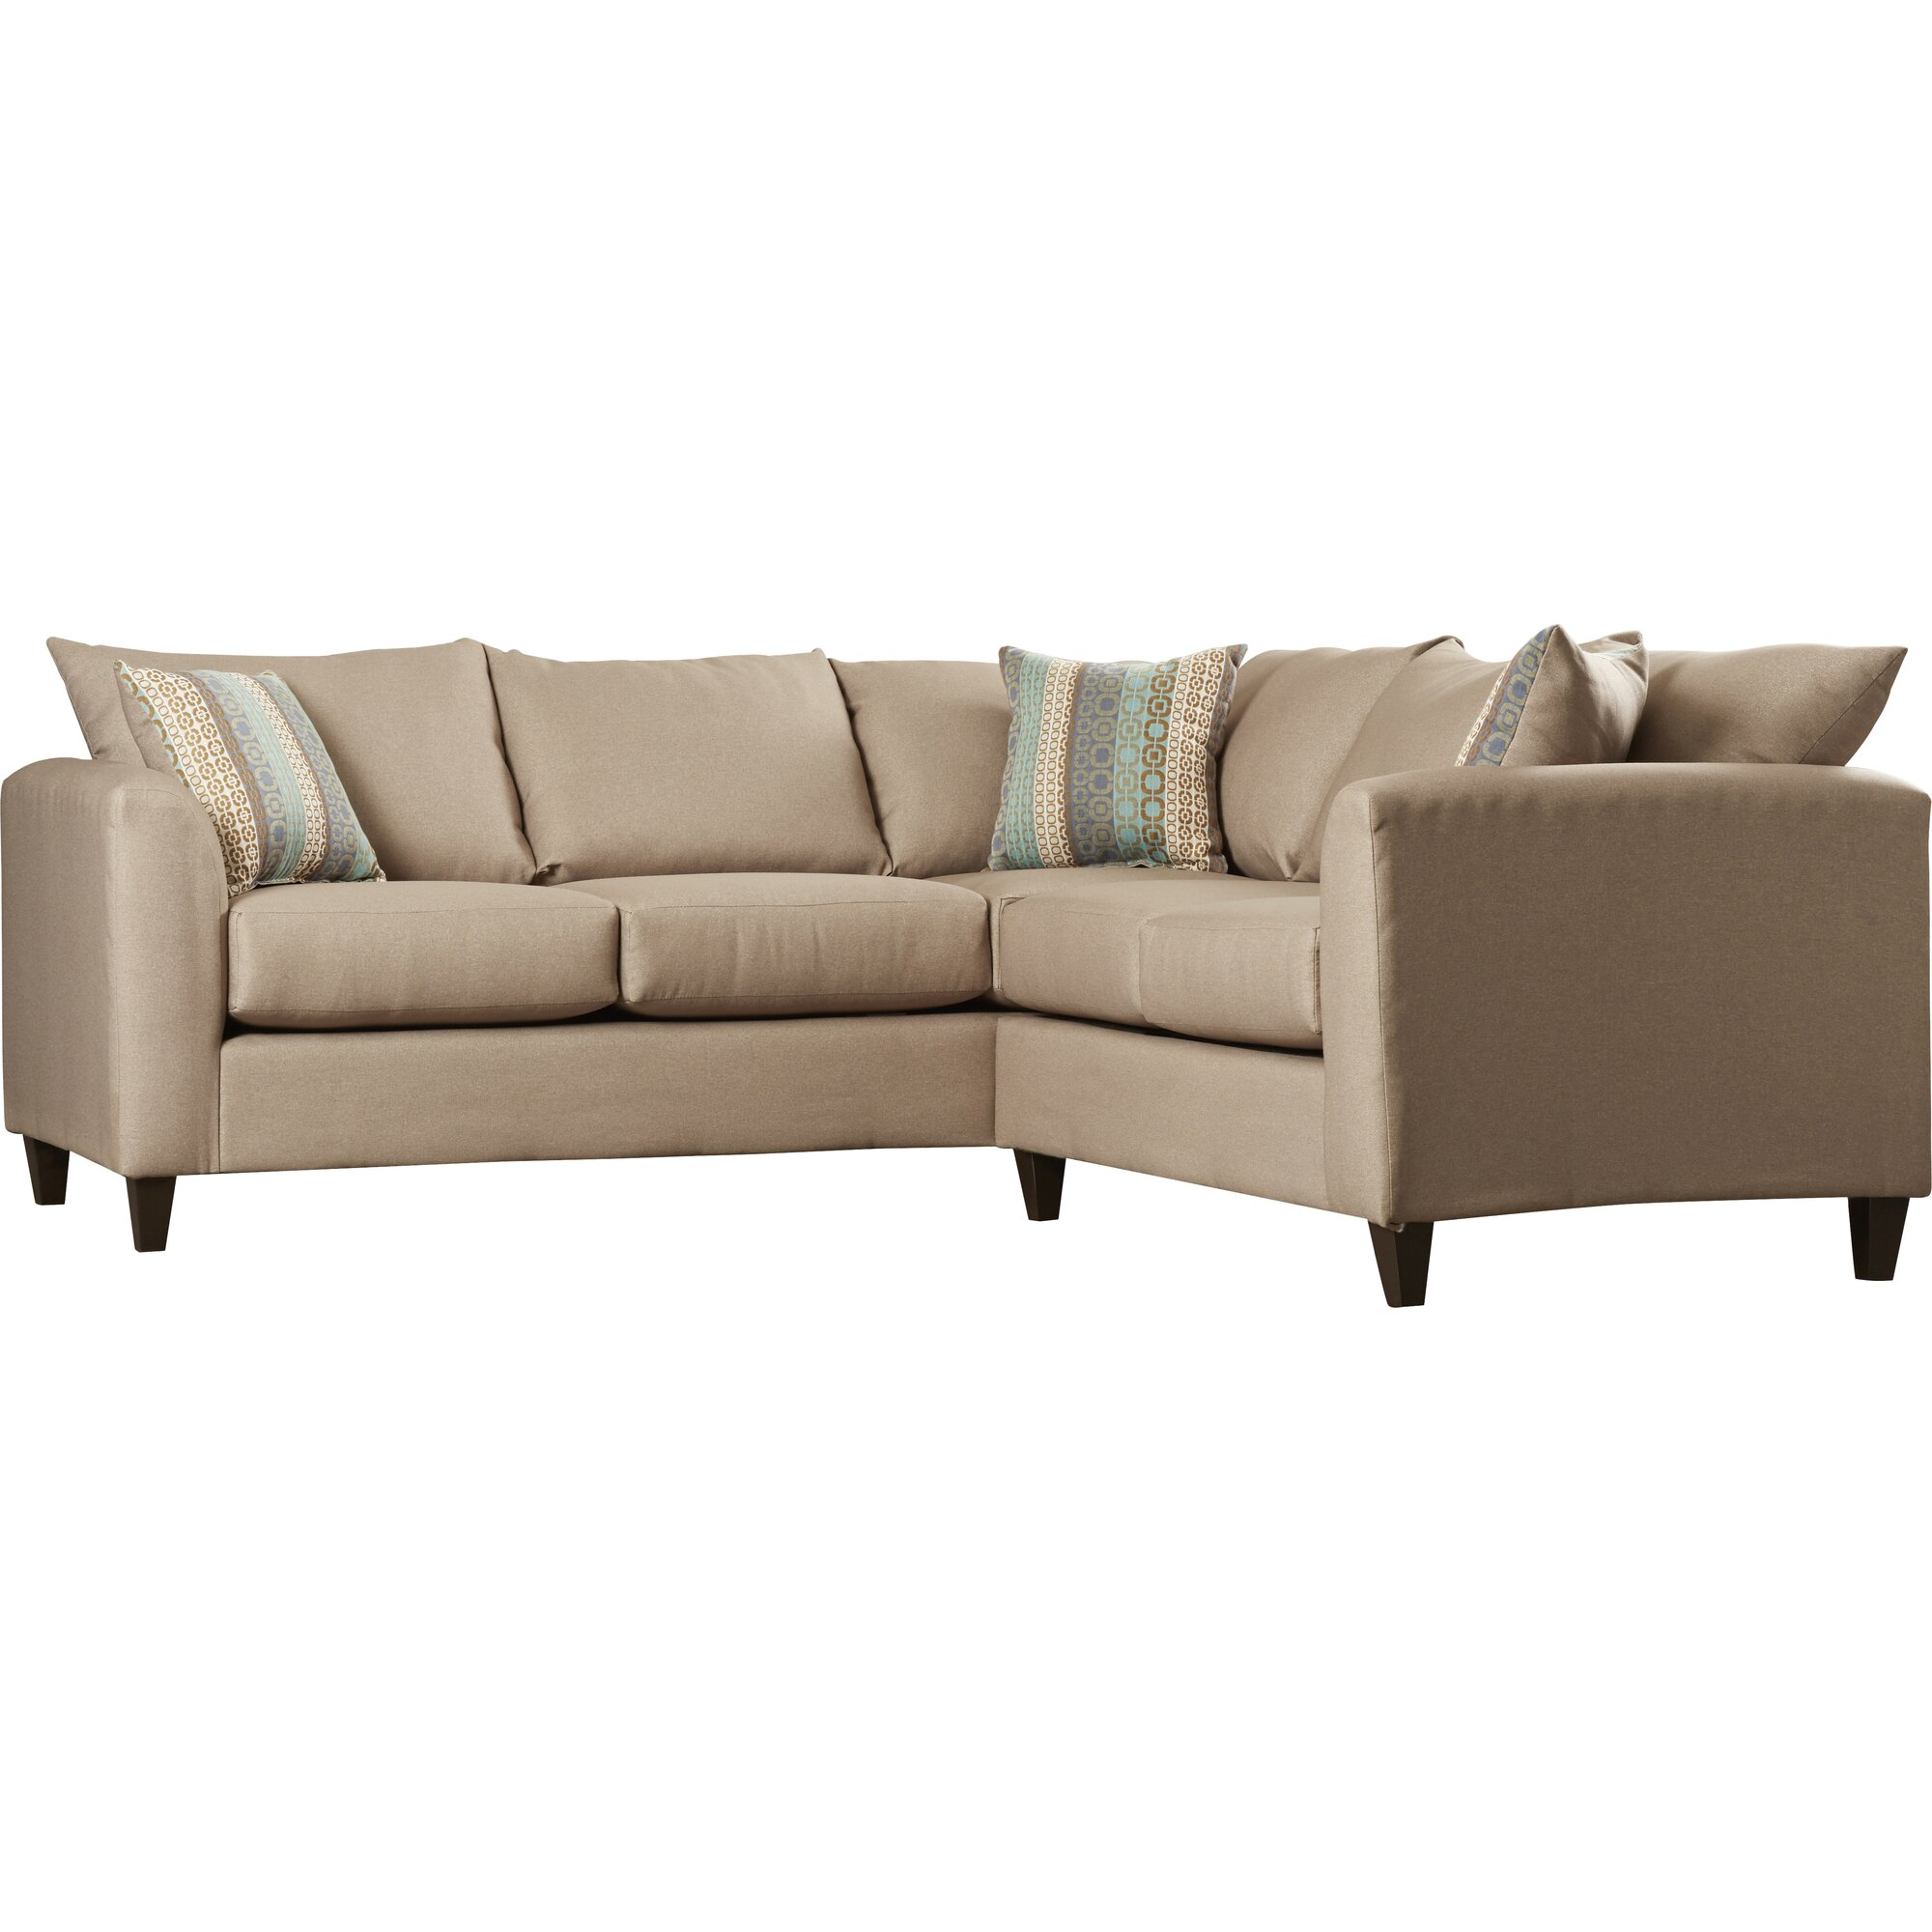 Beachcrest Home Serta Upholstery Sectional Reviews Wayfair